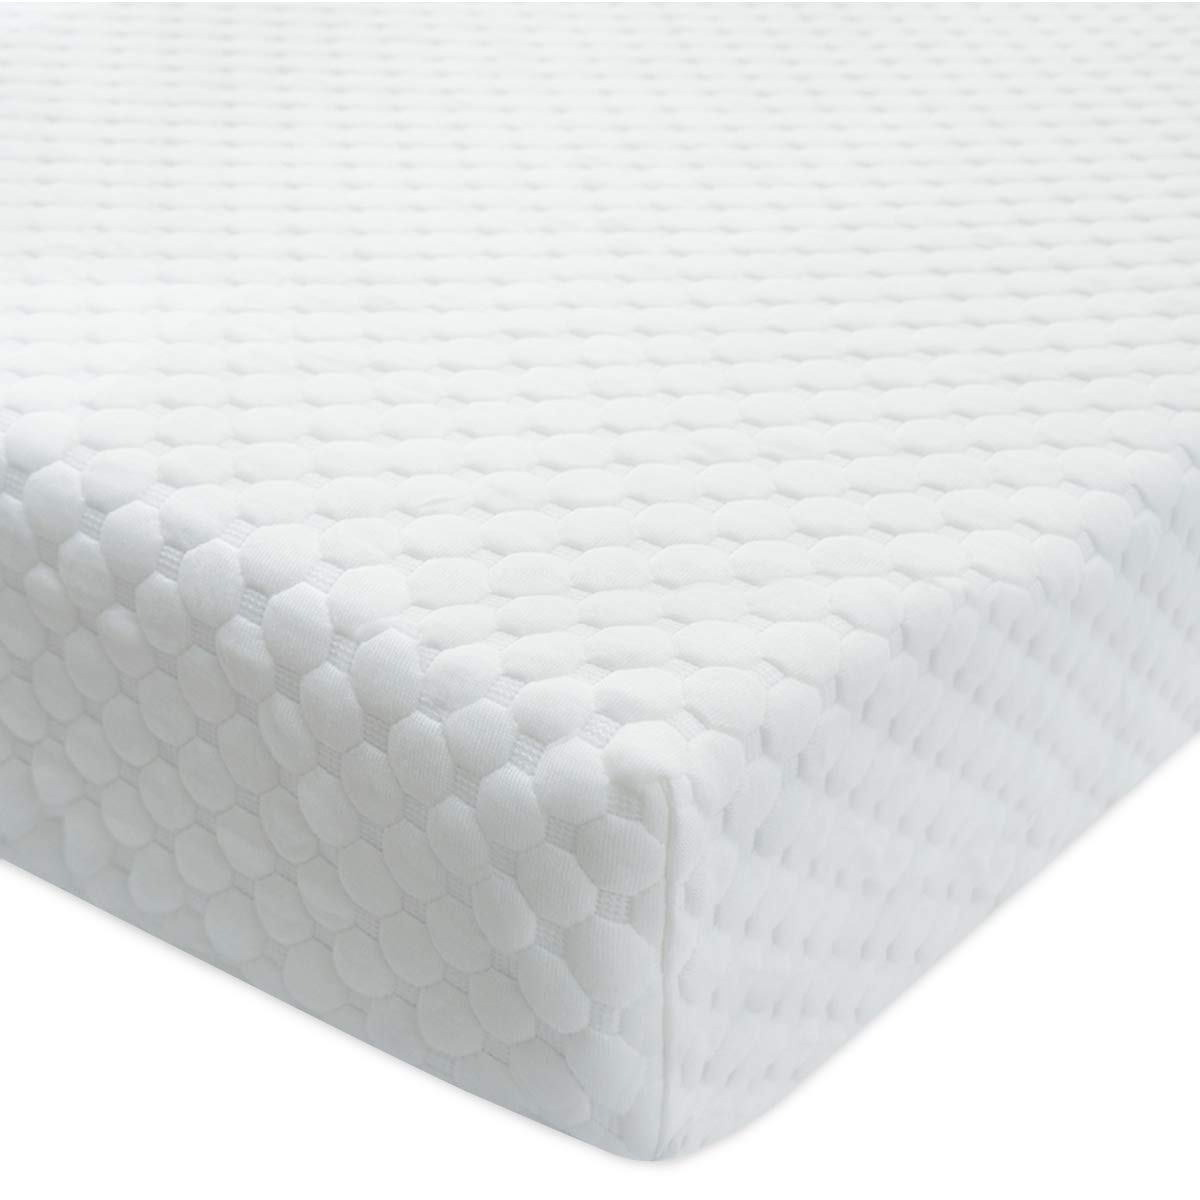 BlueSnail Bamboo Rayon Quilted Pack N Play Crib Mattress Cover - Fits All Baby Portable Mini Cribs, Play Yards and Foldable Mattresses (Off White)